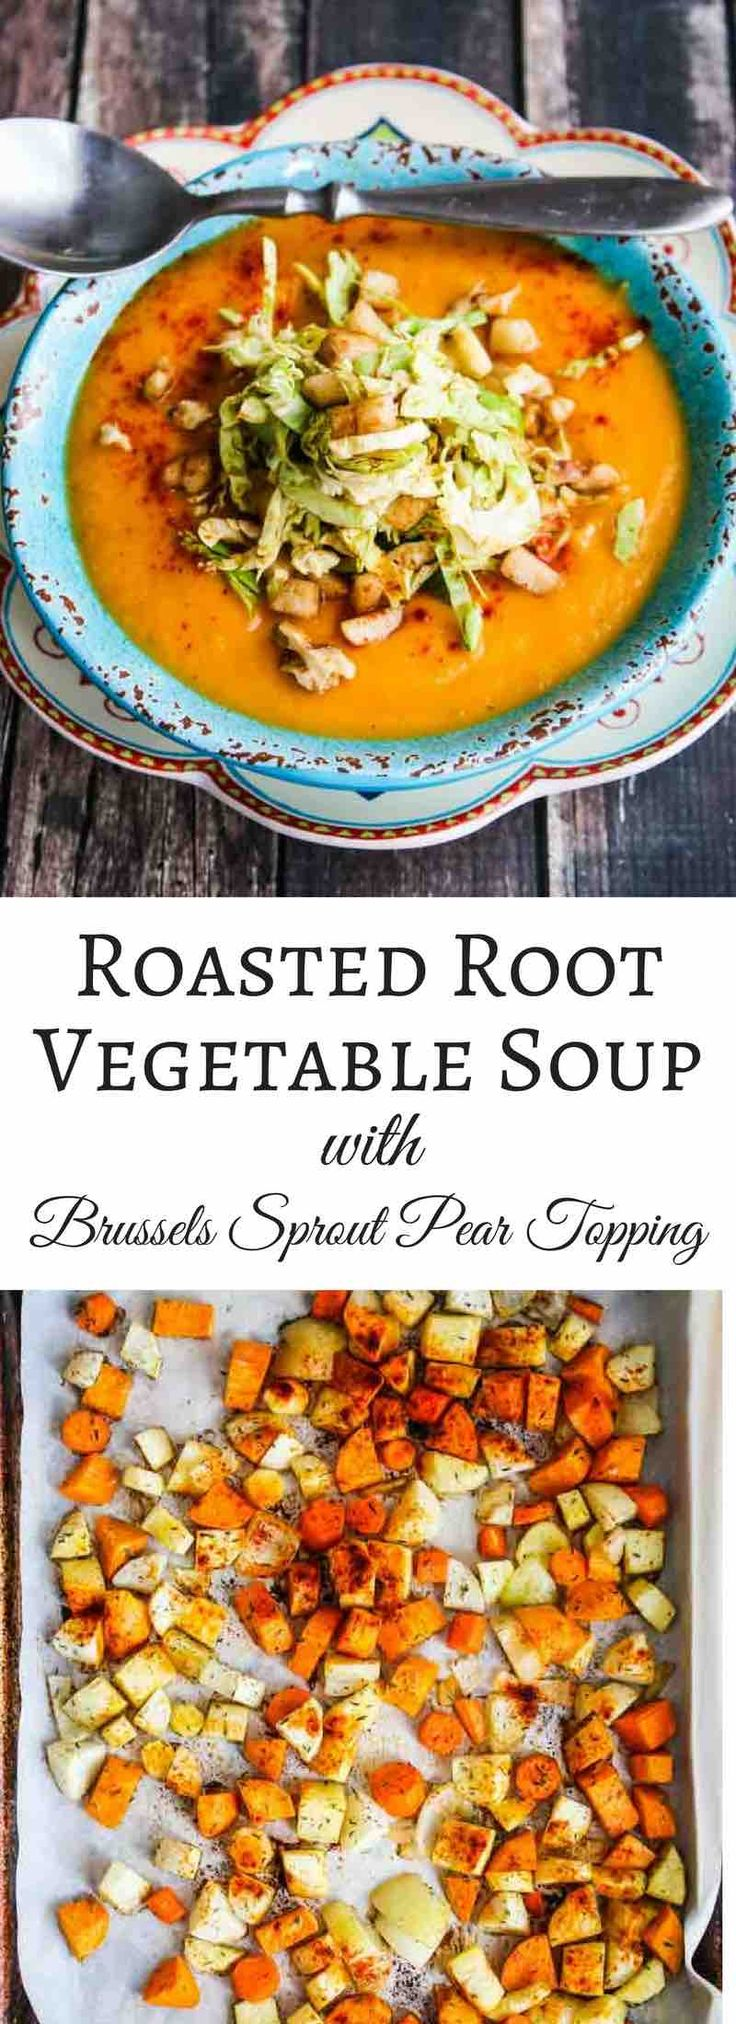 Roasted Root Vegetable Soup with Brussels Sprout Pear Topping - this velvety smooth soup topped with a cool crisp salad is healthy, delicious and vegan